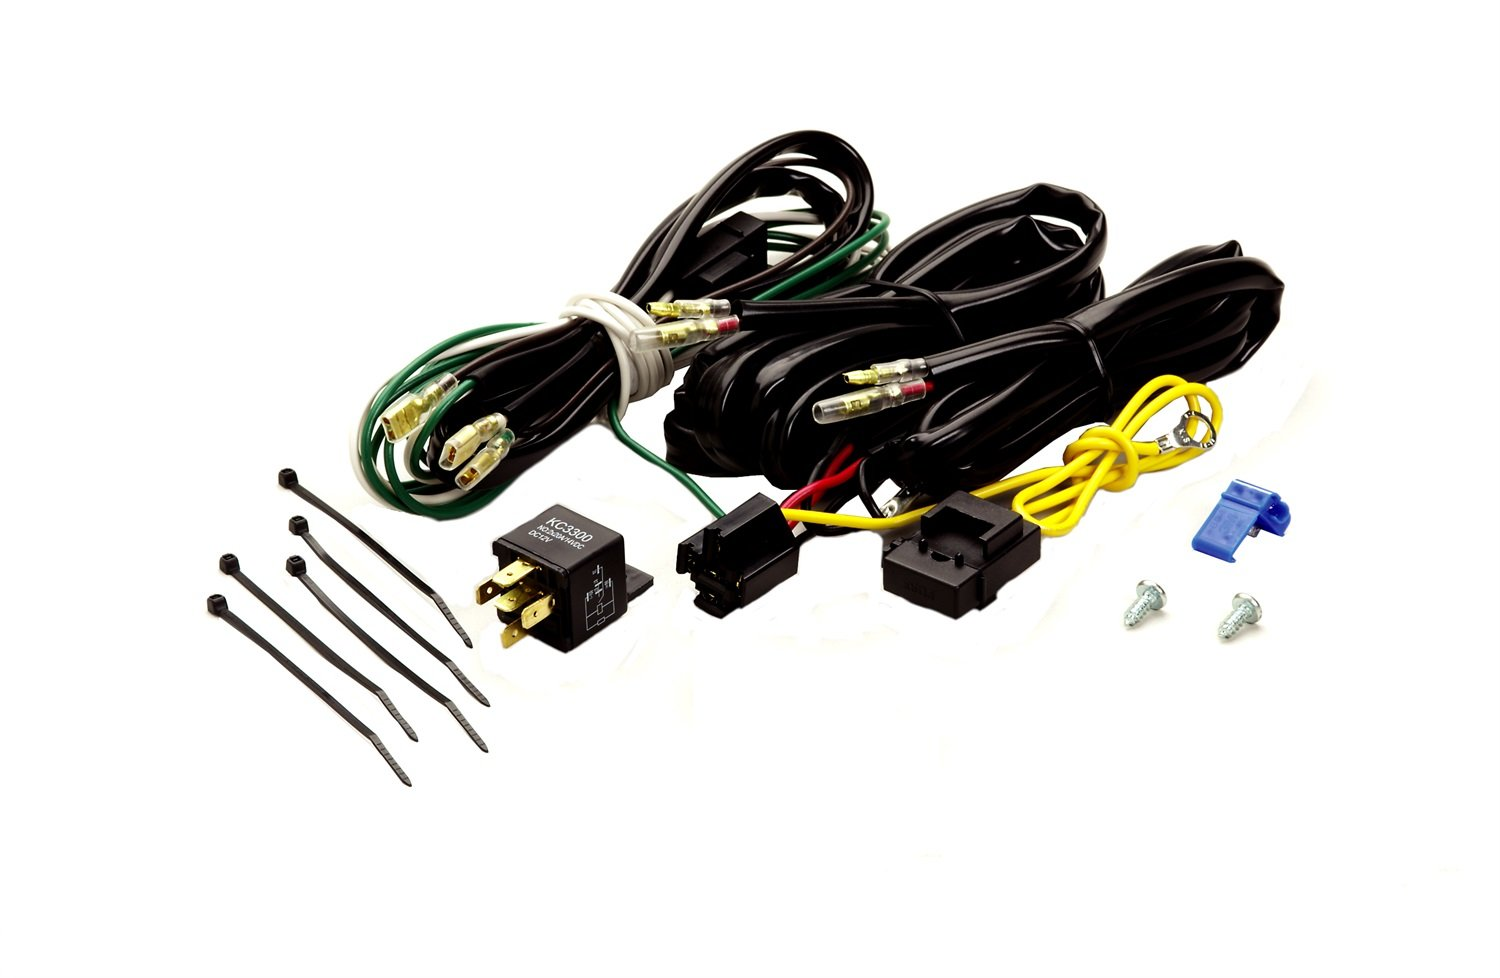 Amazon.com: KC HiLiTES 6316 Add-On Harness - Up to 2 Lights ...